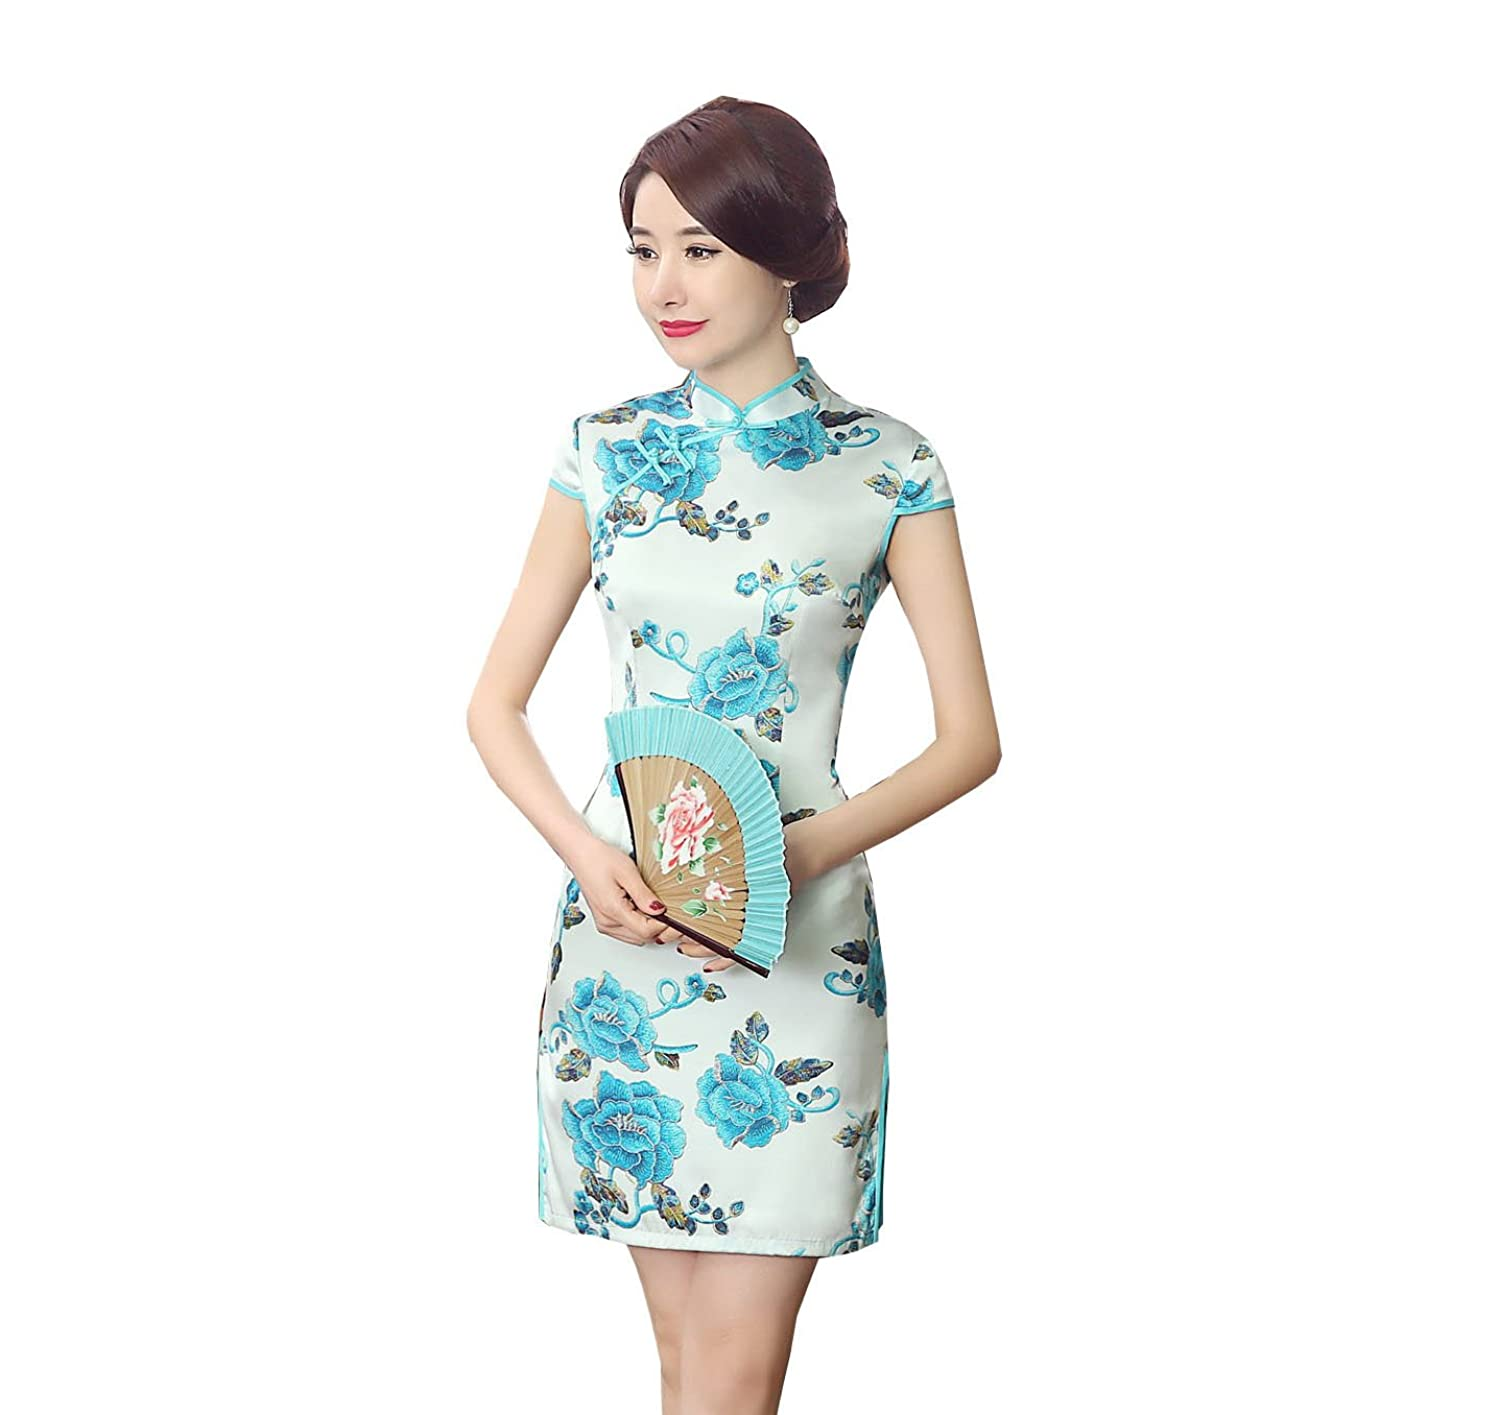 yue lian frauen seide sommerkleid bankett chinesische qipao kost m mit blau blumen wei g nstig. Black Bedroom Furniture Sets. Home Design Ideas